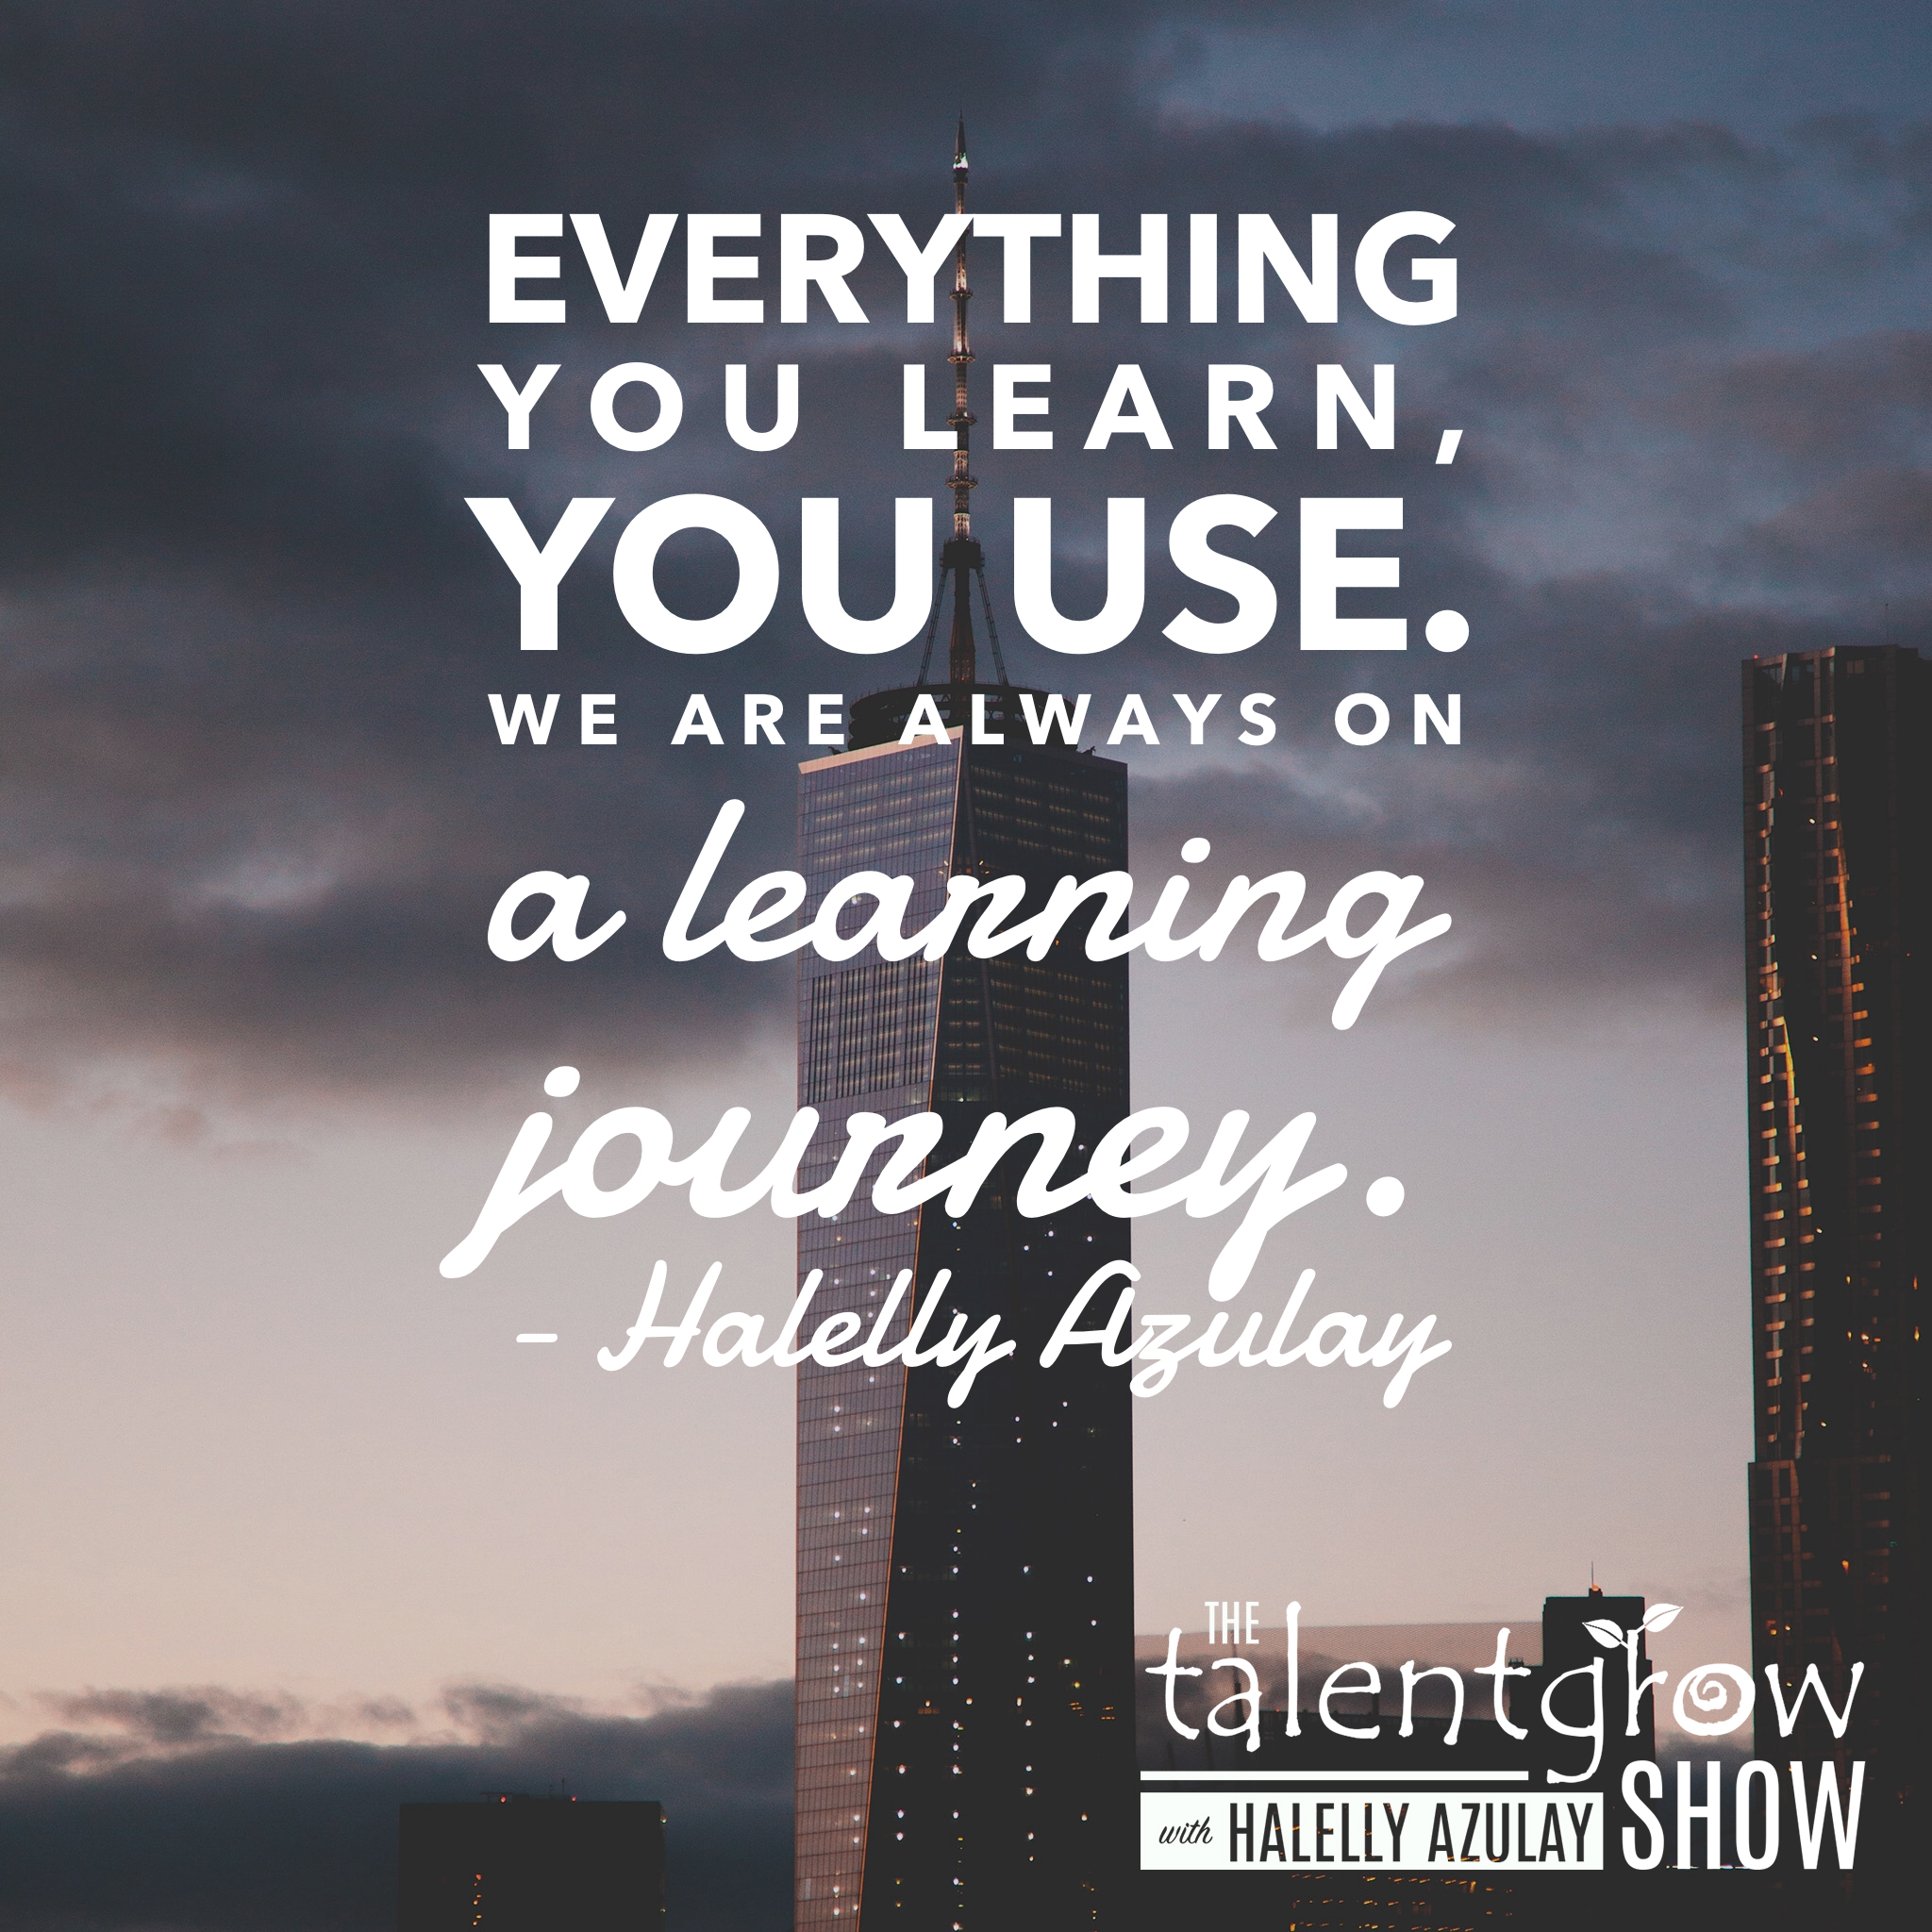 Career advice from Halelly Azulay on the TalentGrow Show podcaast